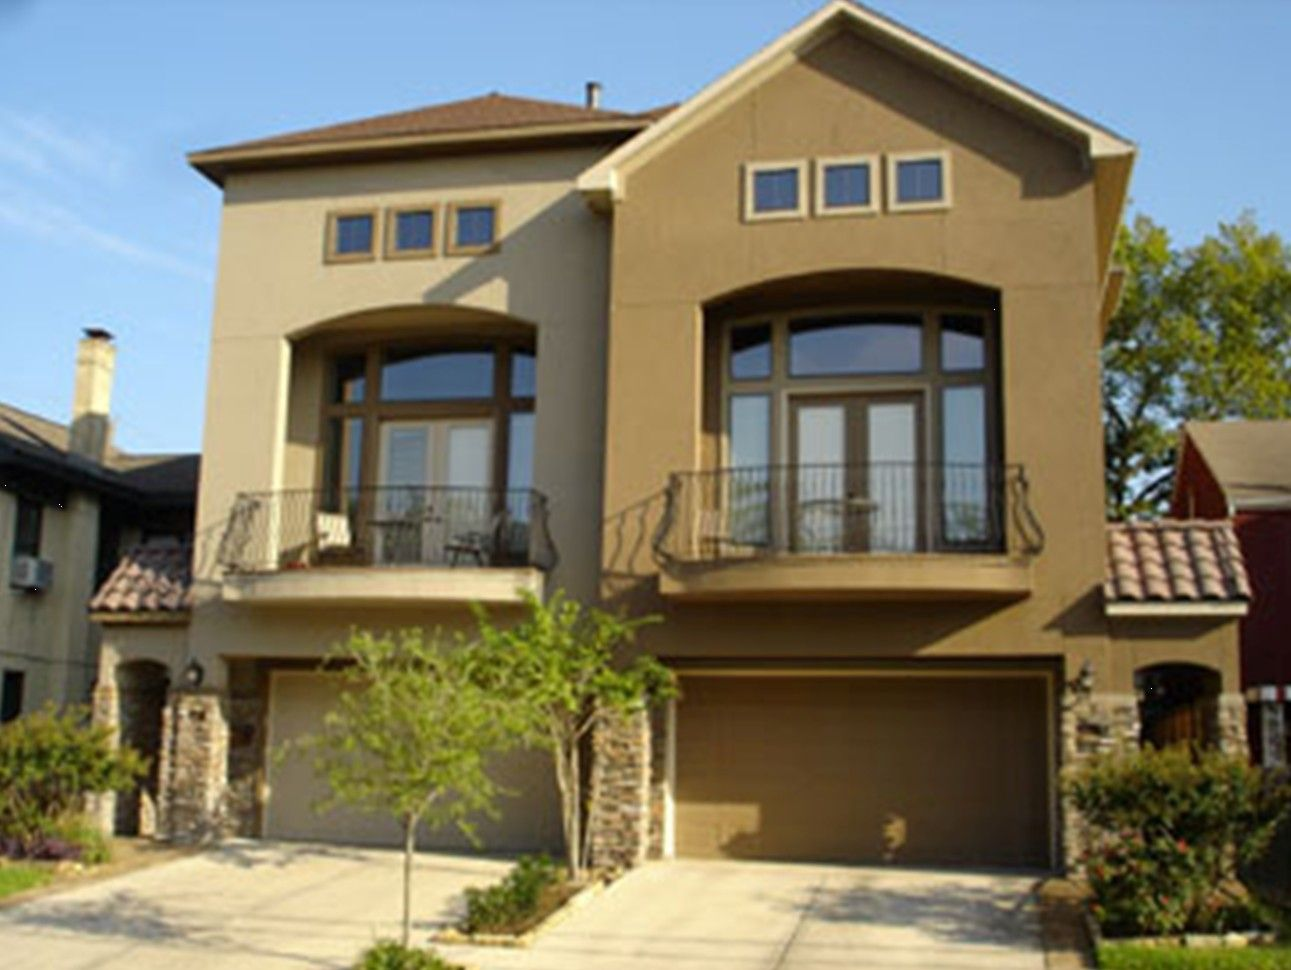 Exterior paint ideas brown - Paint Ideas